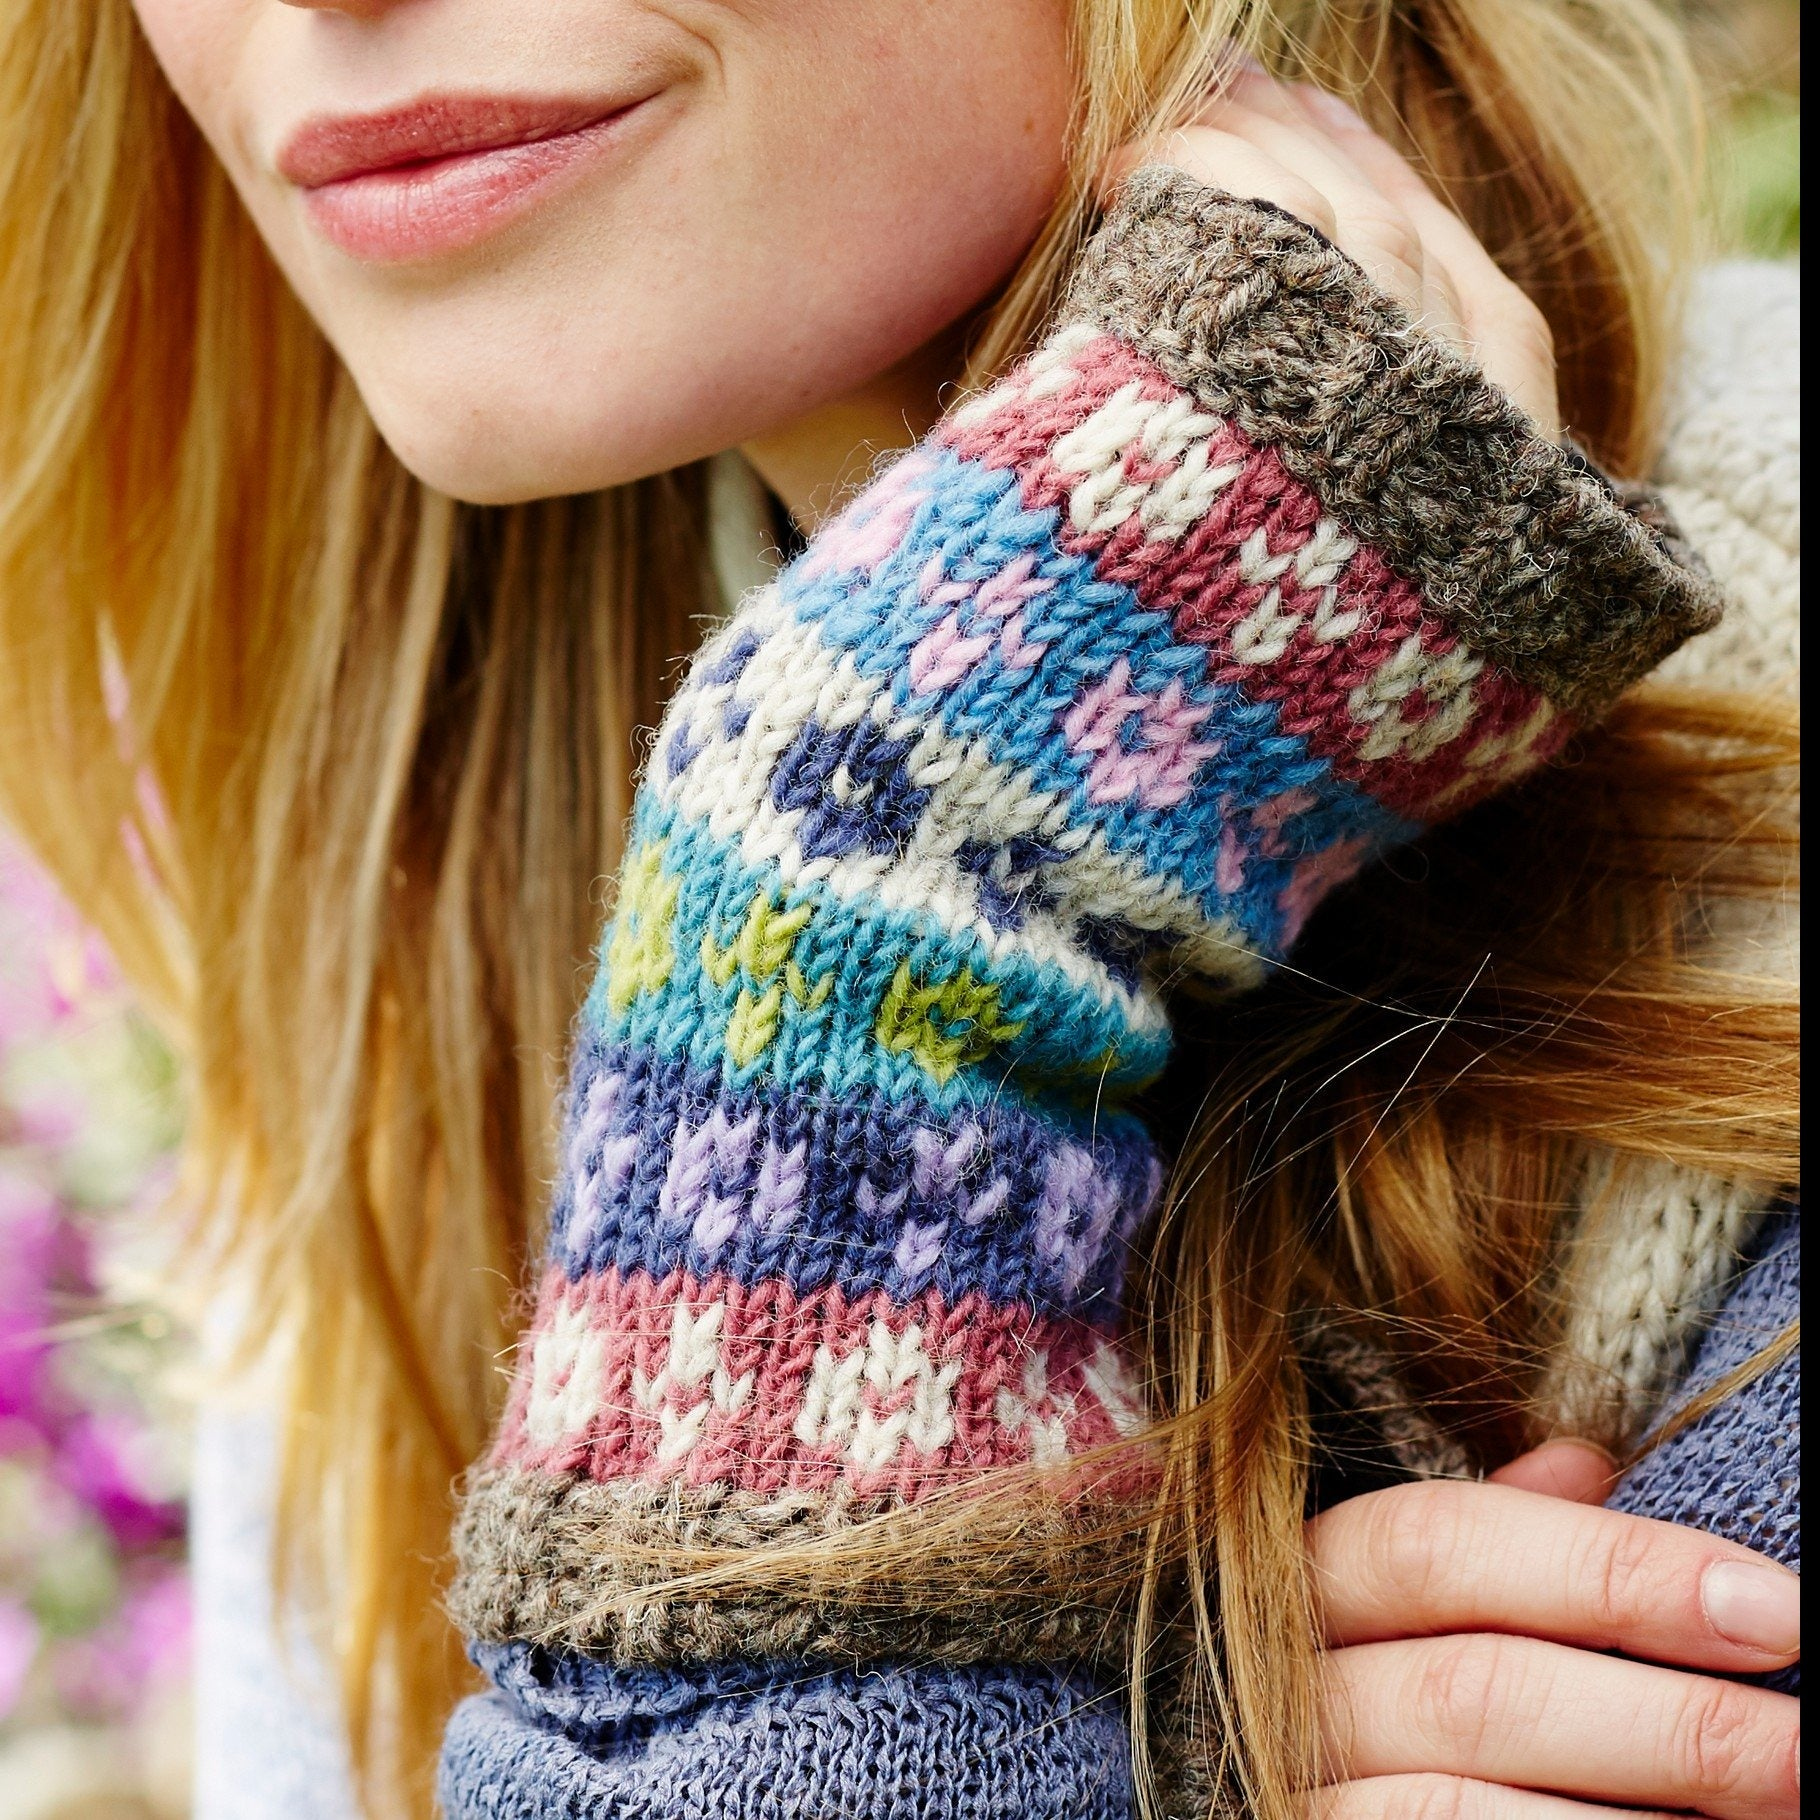 Handknitted fair trade wool handwarmers